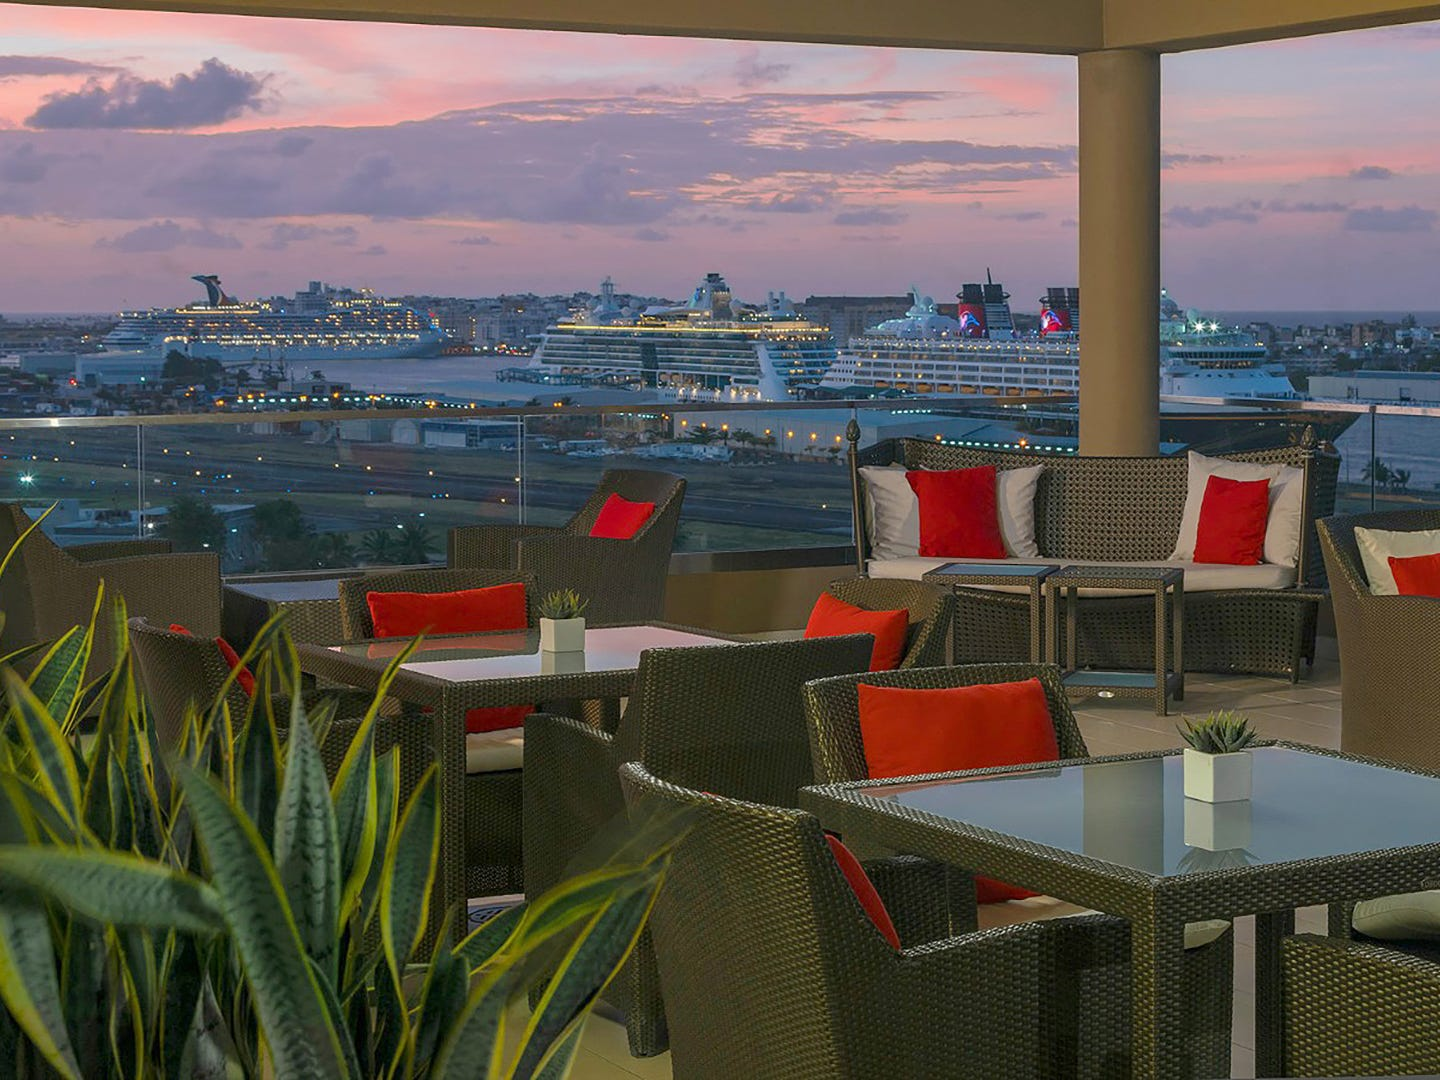 The rooftop pool bar at Sheraton Puerto Rico is the best spot to watch cruise ships chug along the bay.